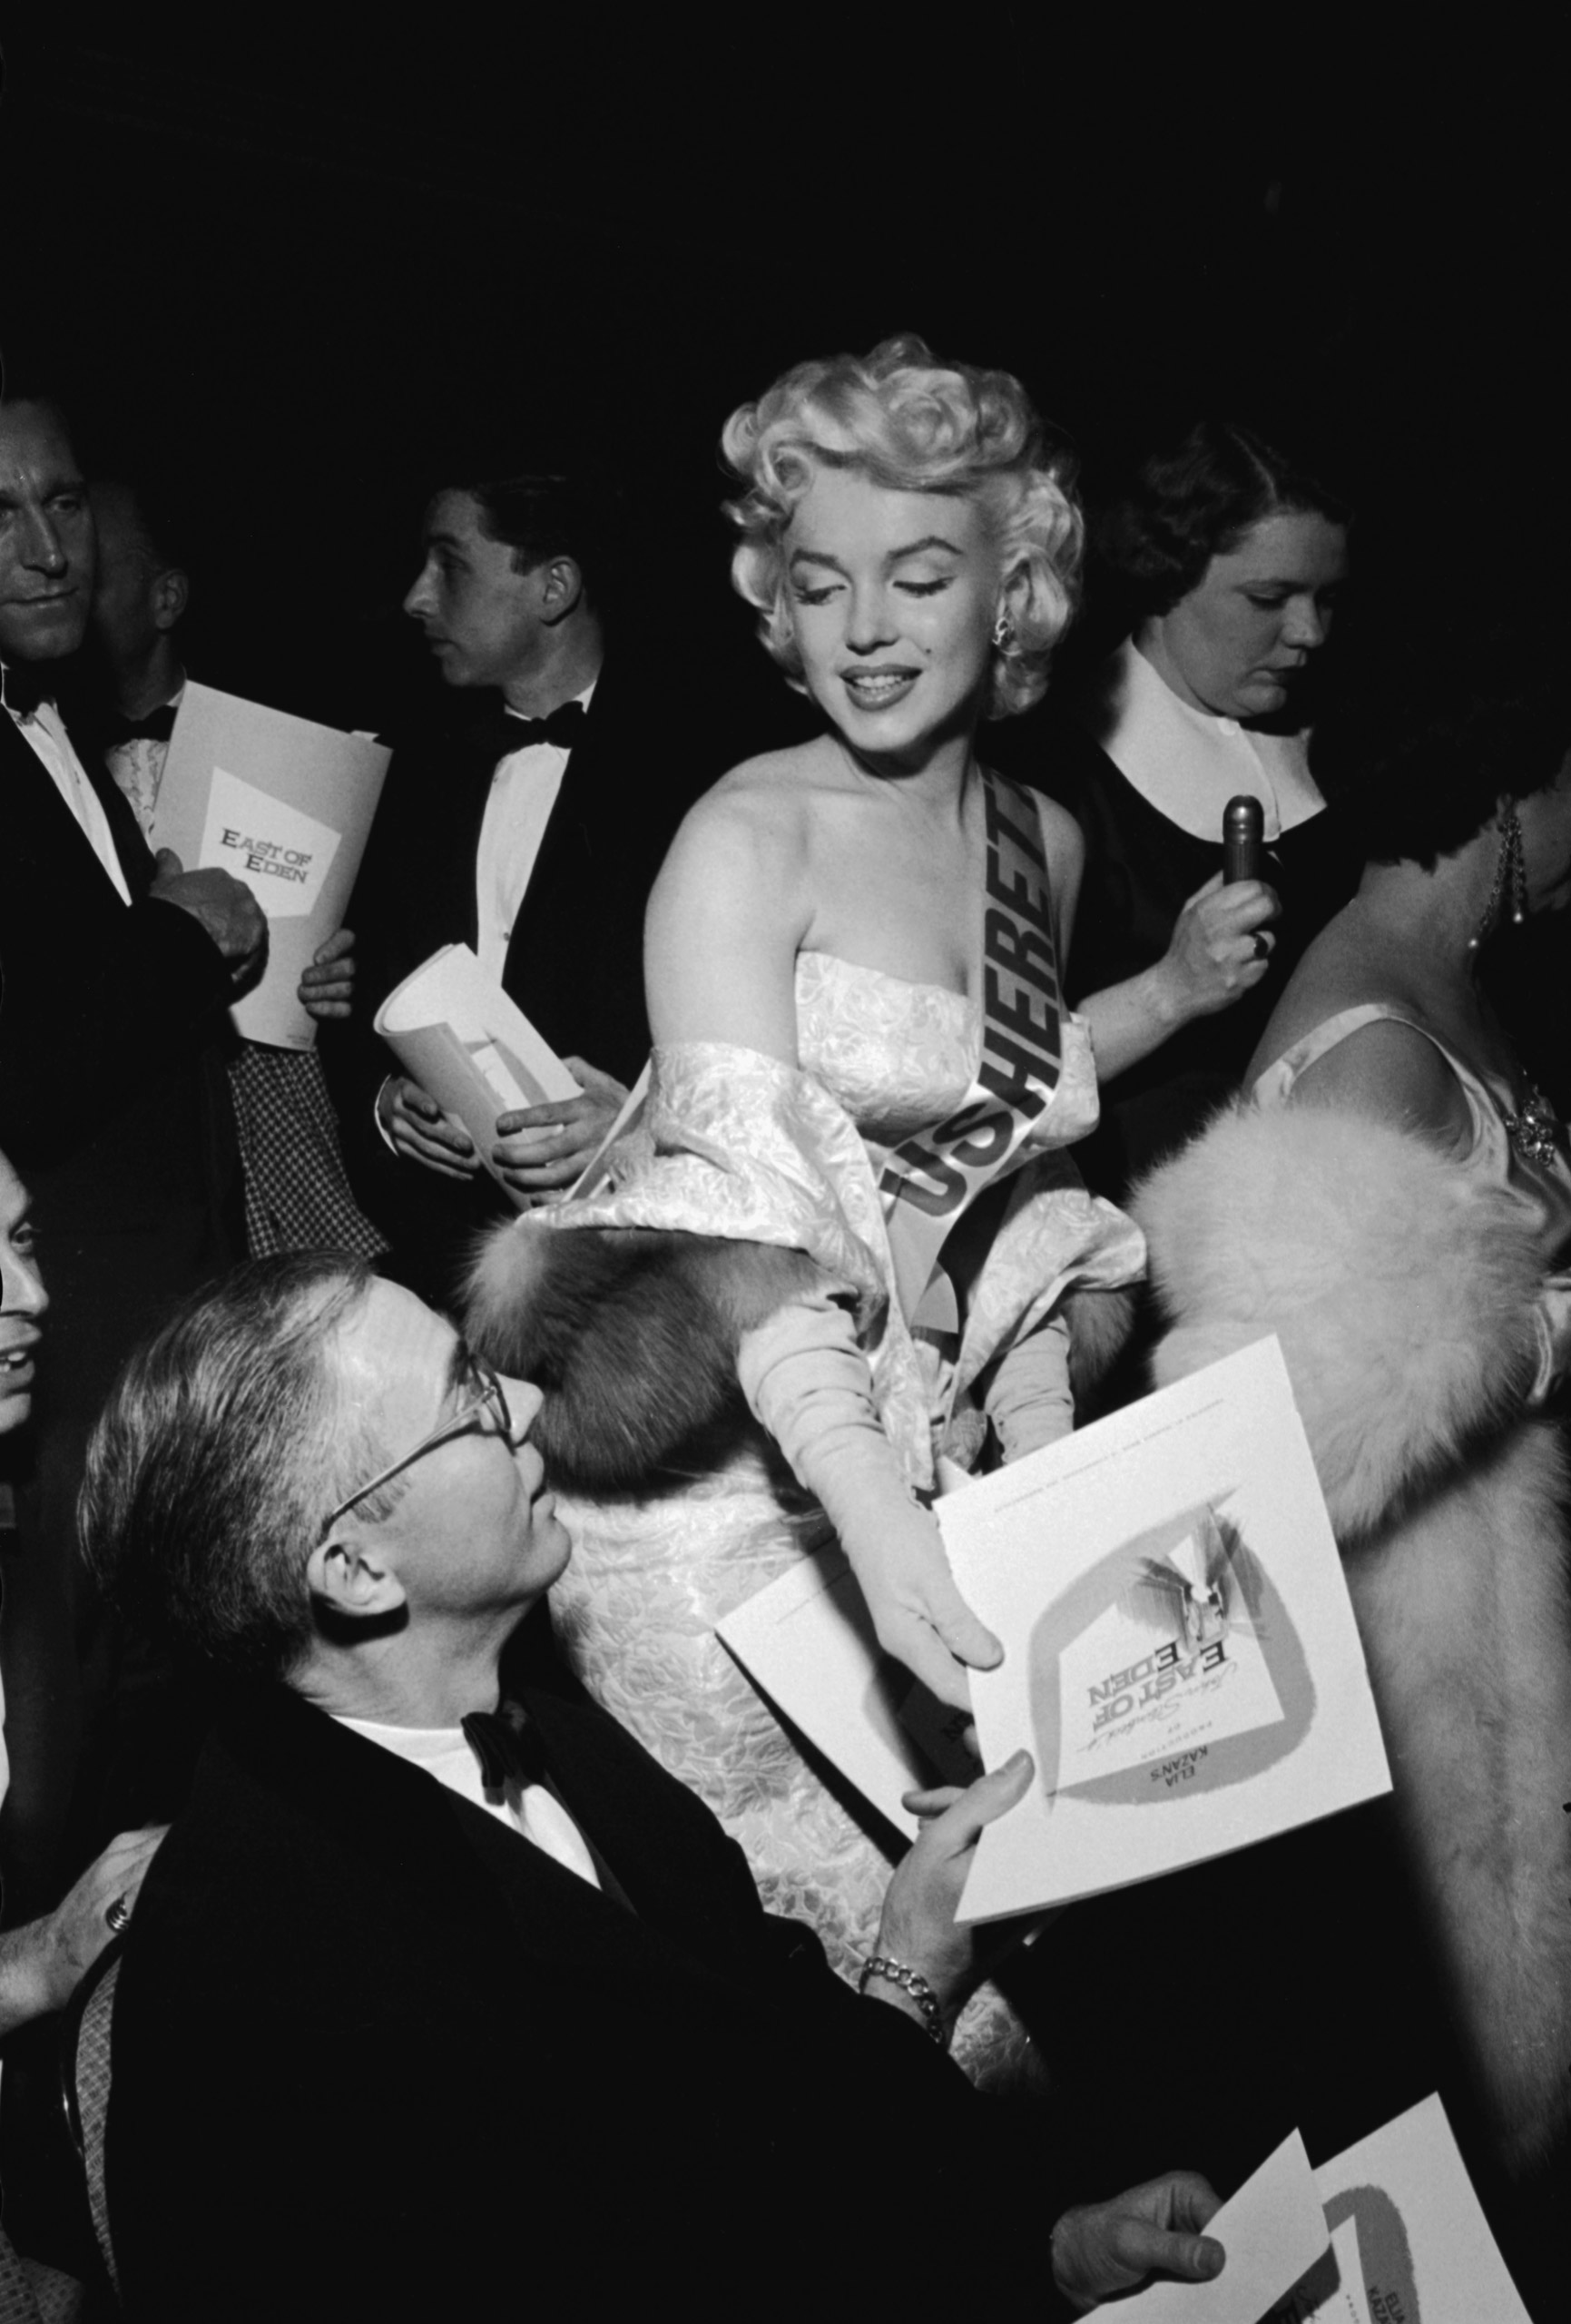 Marilyn Monroe attends the premiere for 'East of Eden' at the Astor Theater, New York City, 1955.